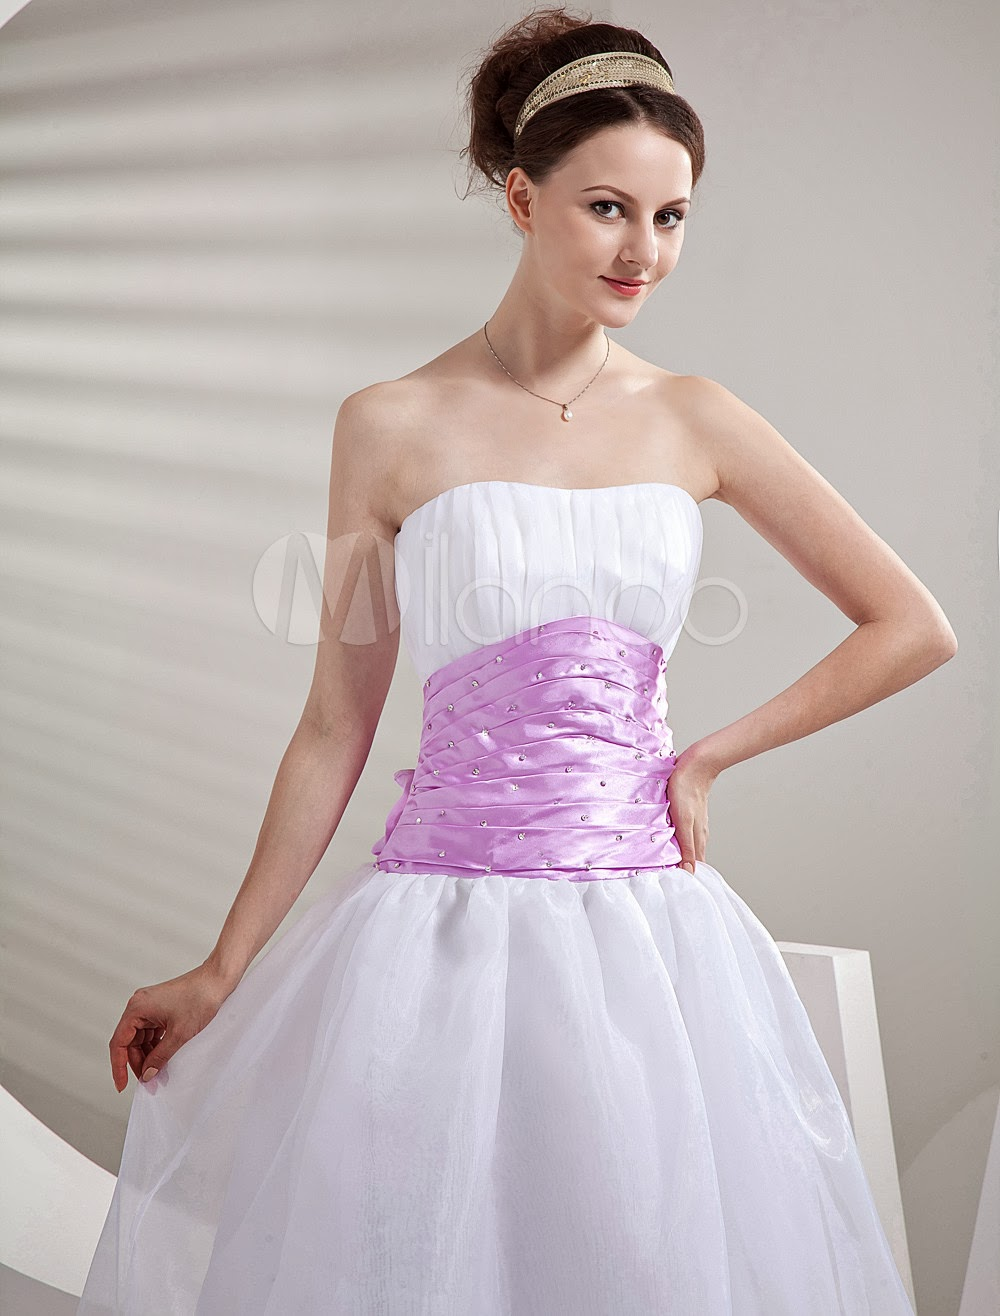 China Wholesale Dresses - Cute White Strapless Pink Sash Beaded Cocktail Dress